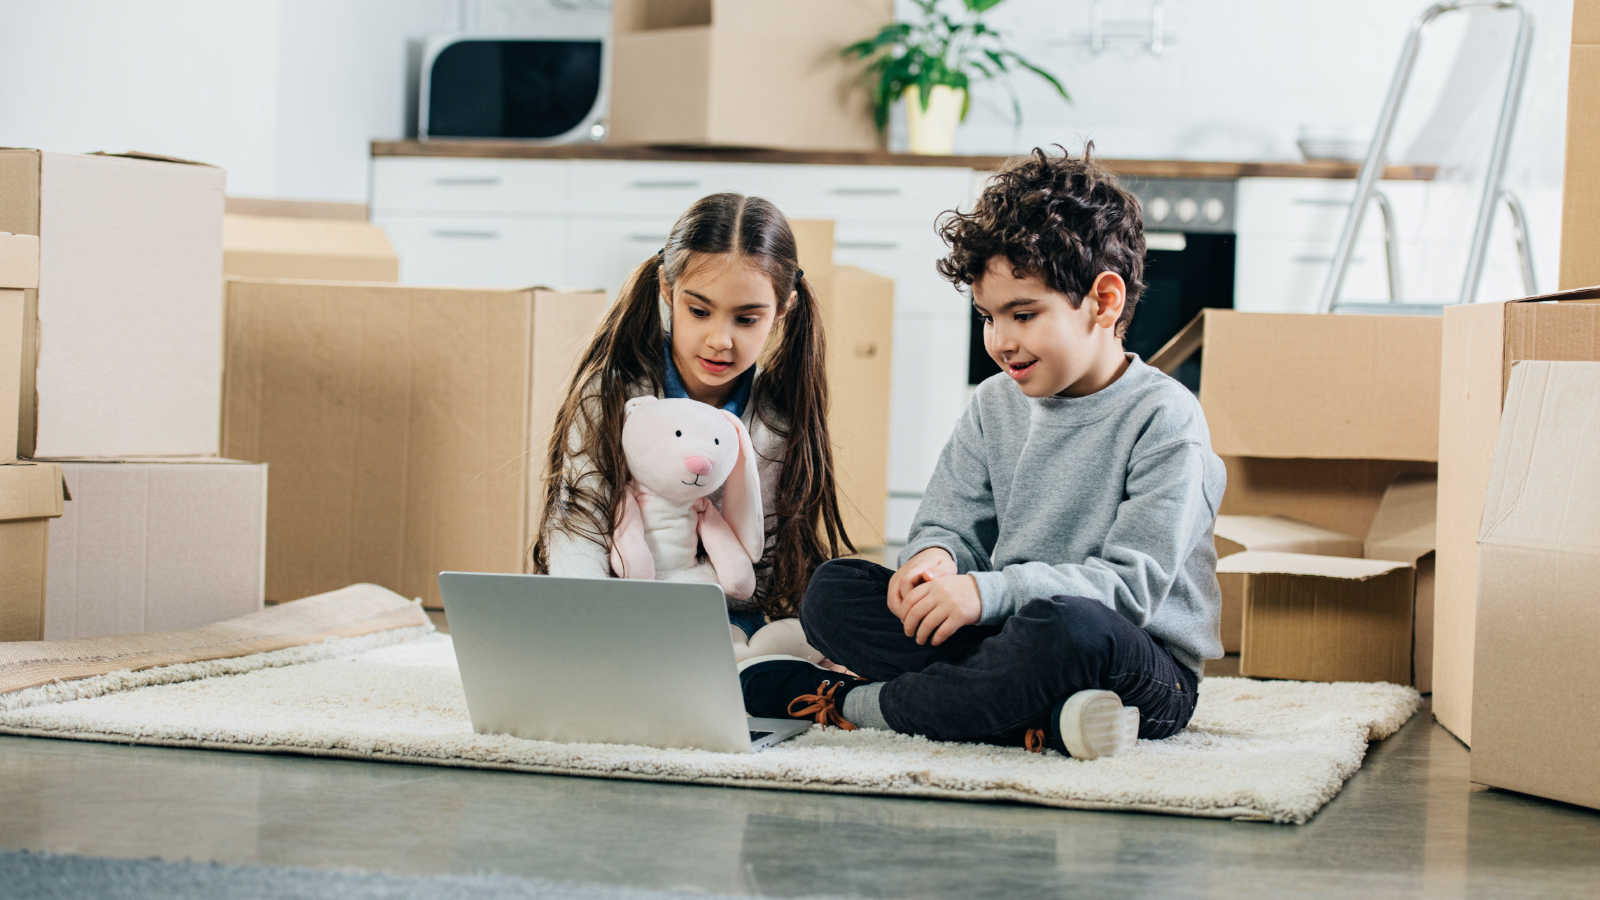 happy children using laptop while sitting on carpet in new home